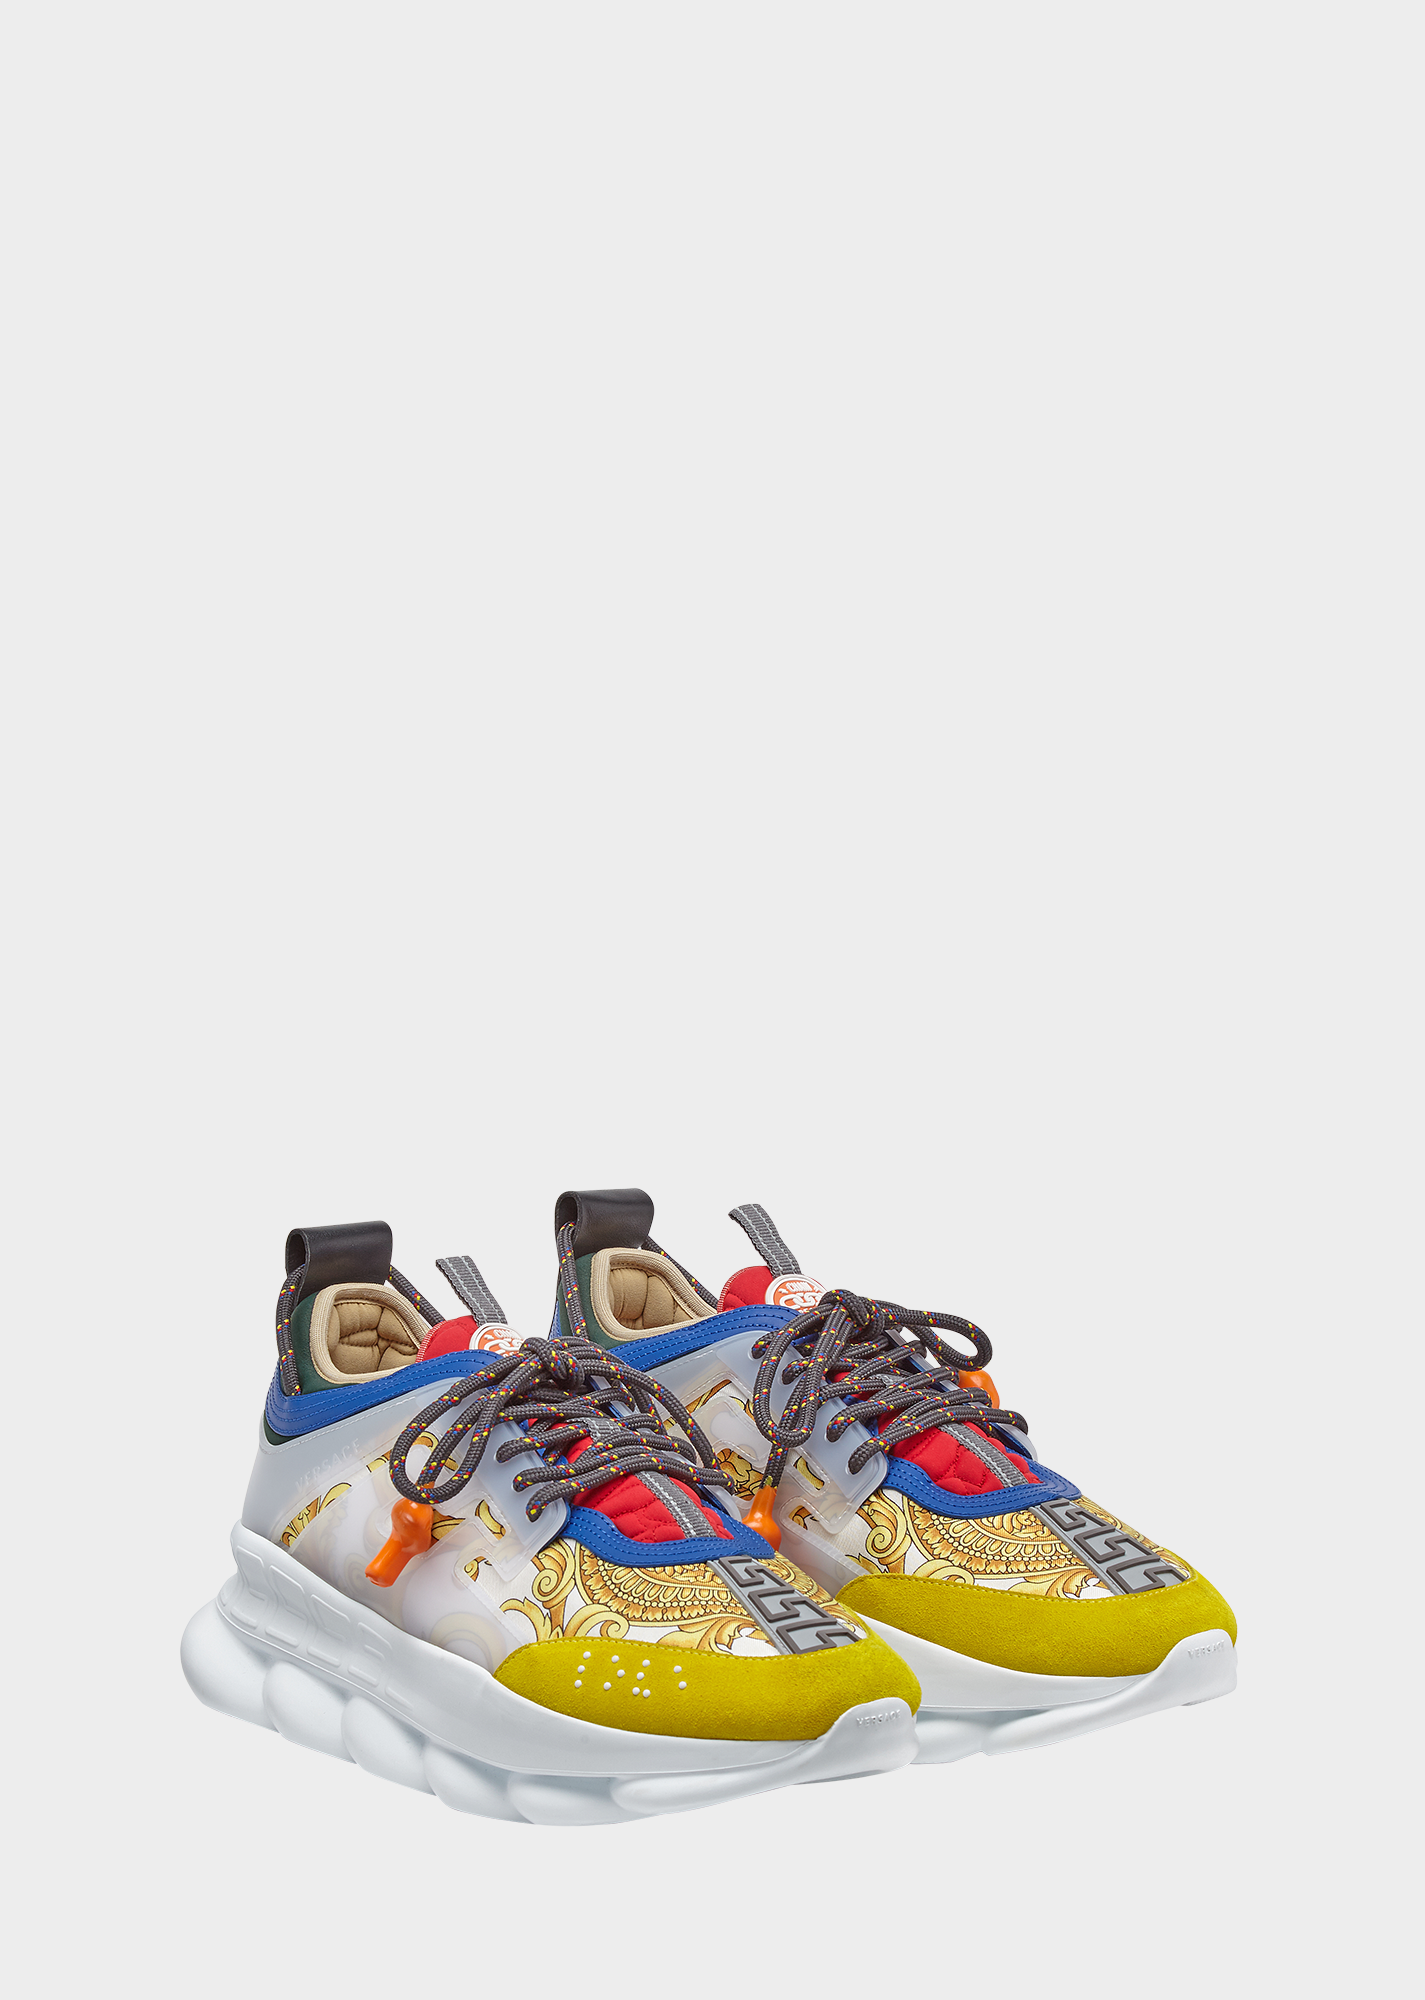 63c7c99b0 VERSACE Chain Reaction Sneakers.  versace  shoes